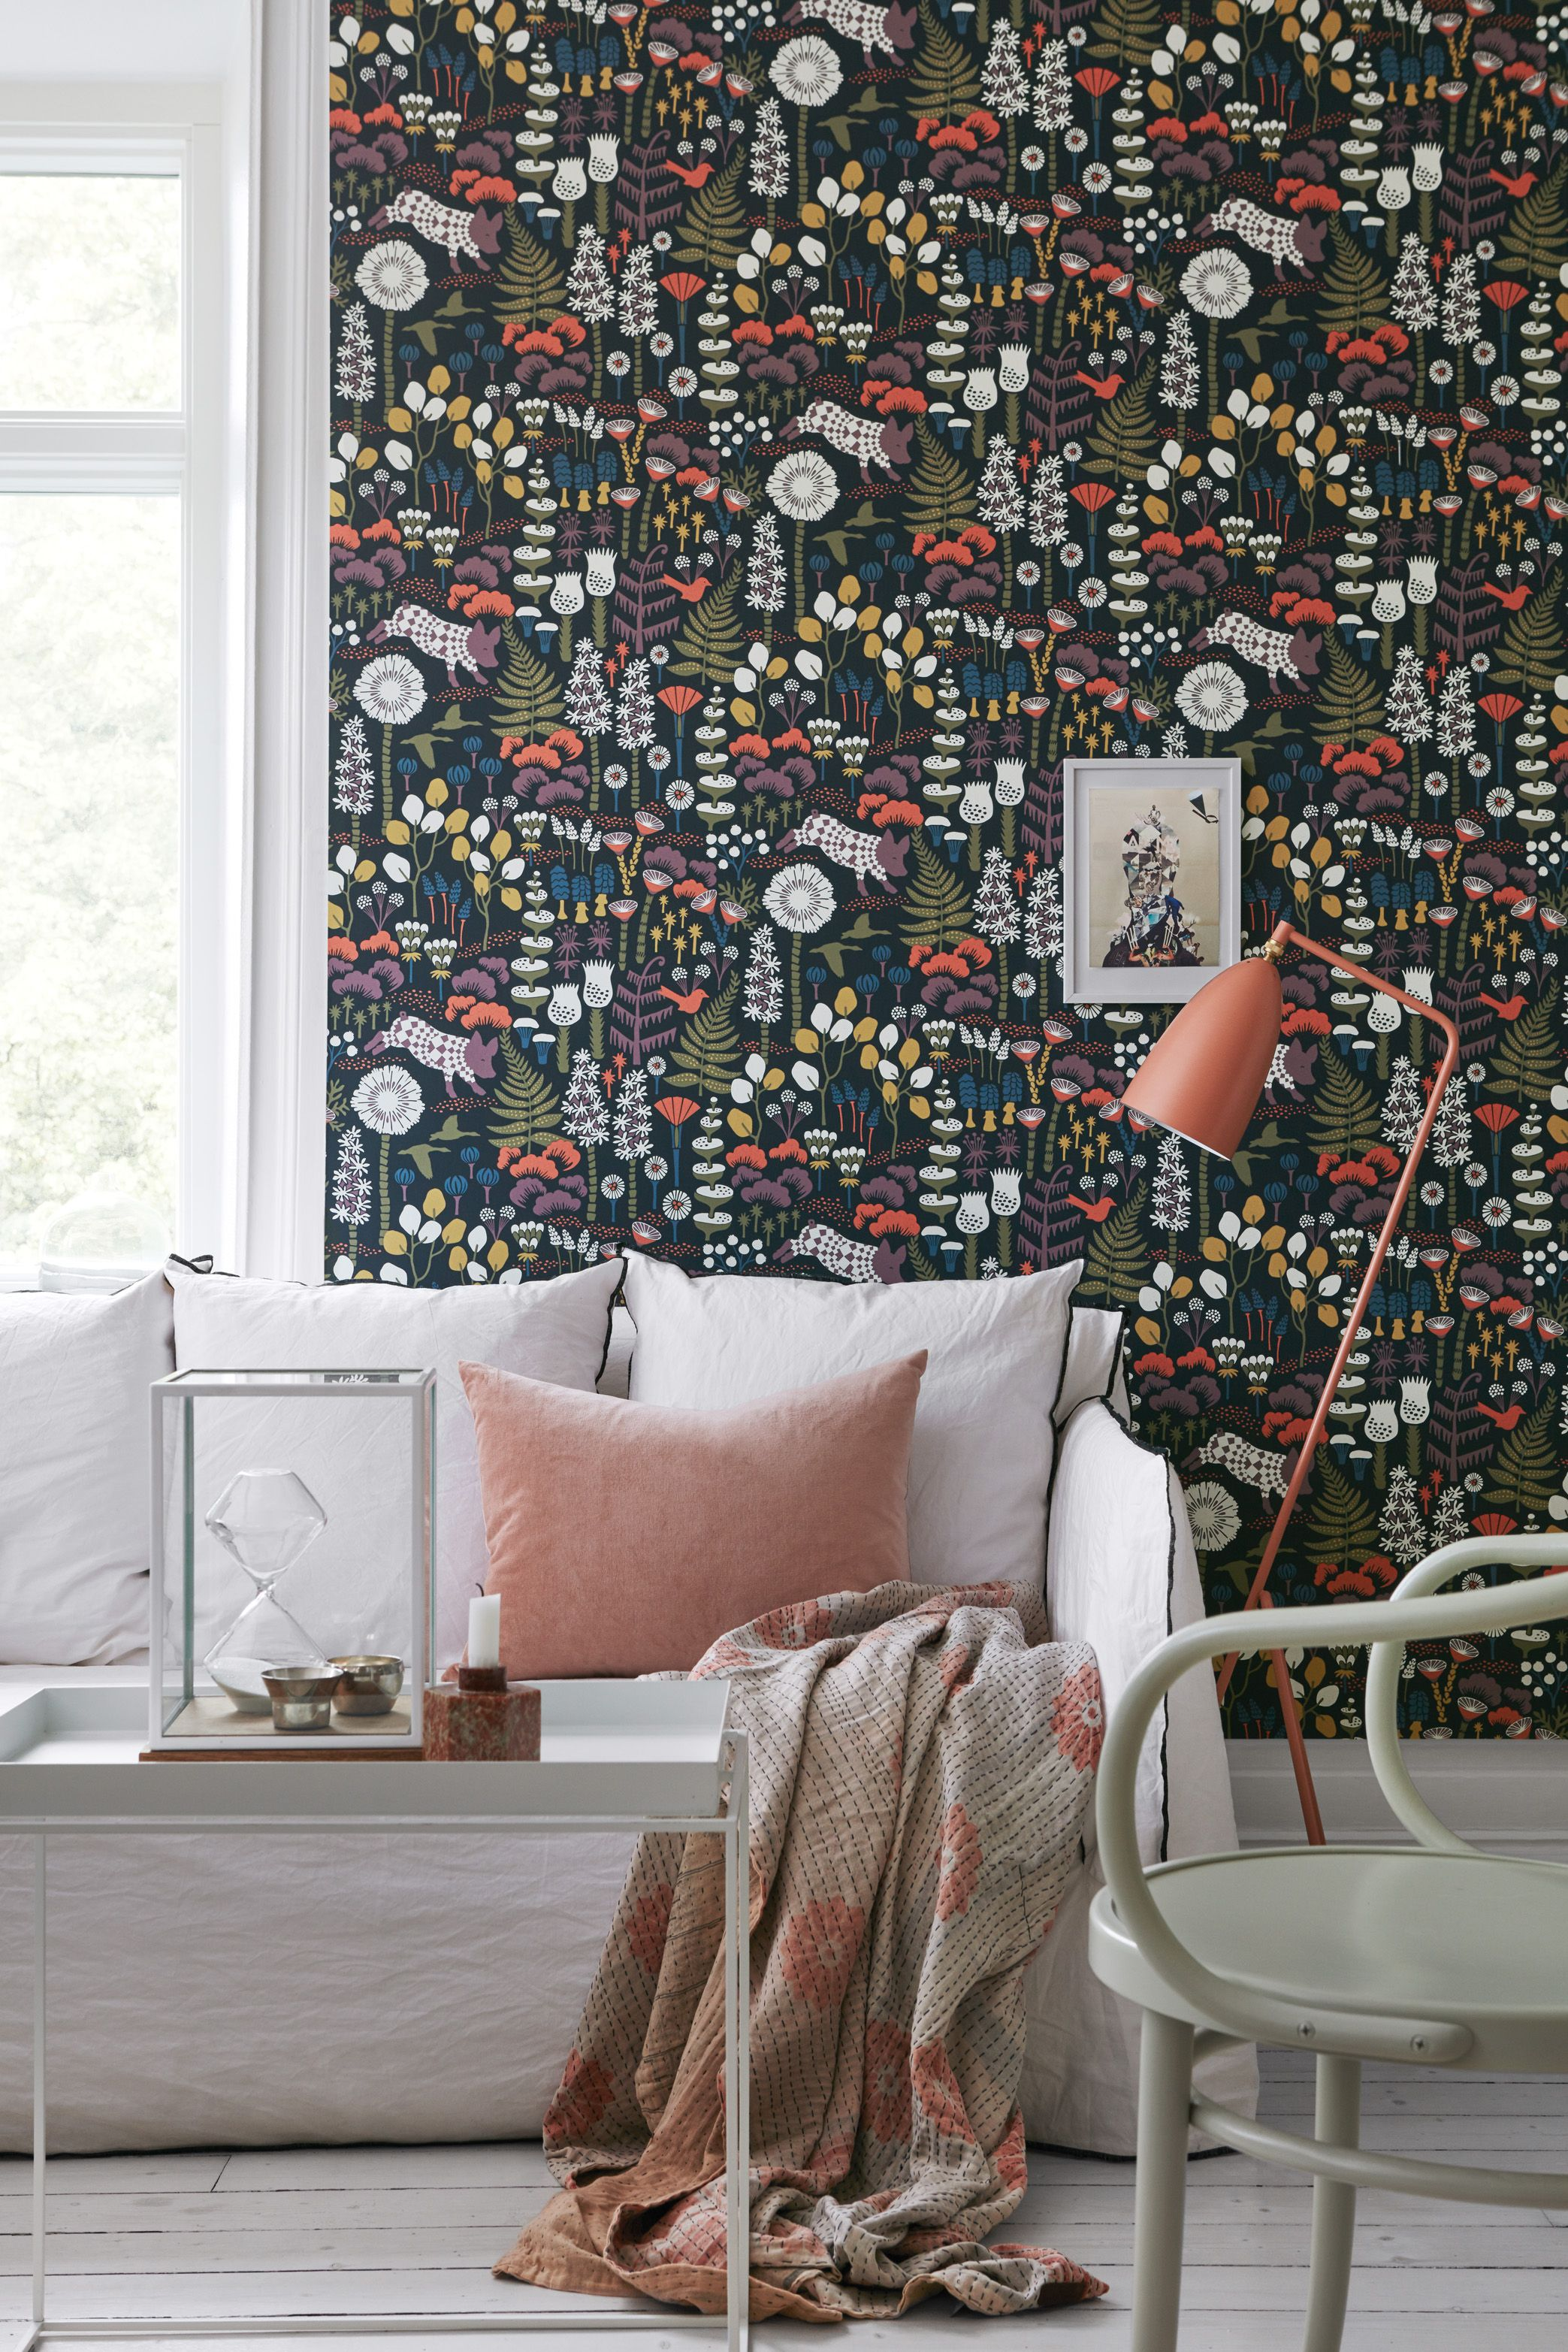 Mid Century Modern Wallpaper Ideas for Your Home